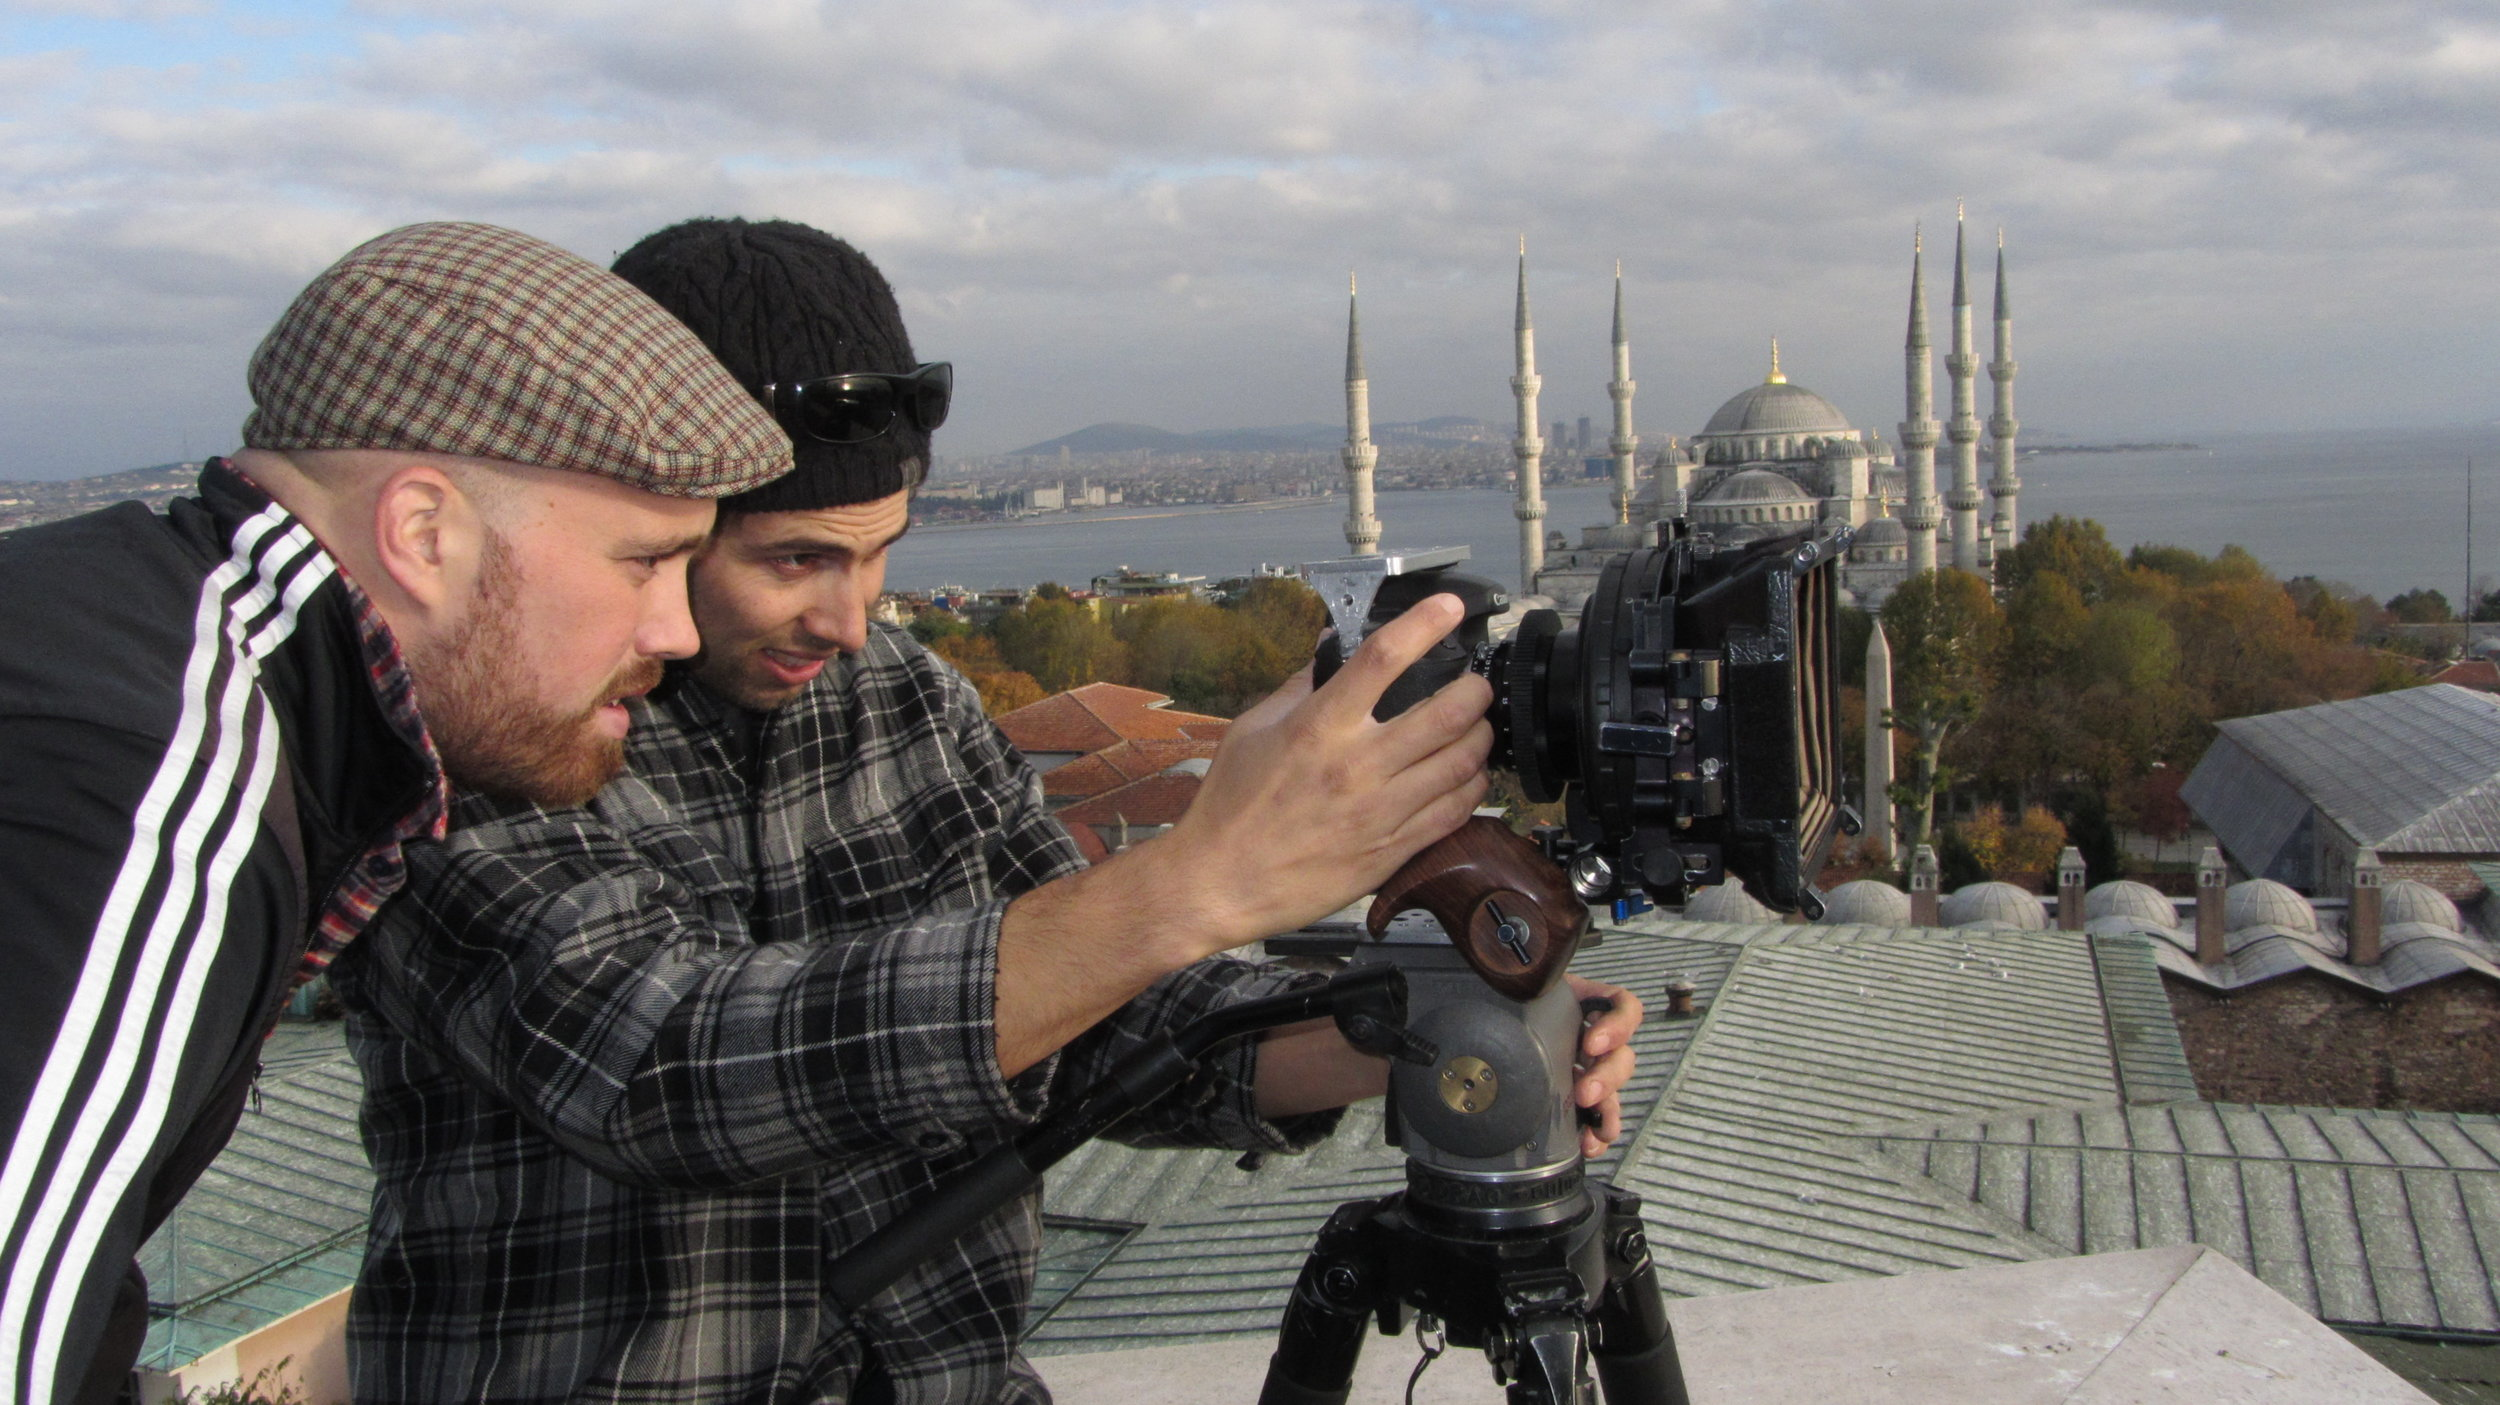 On Location in Instanbul with Couchsurfing